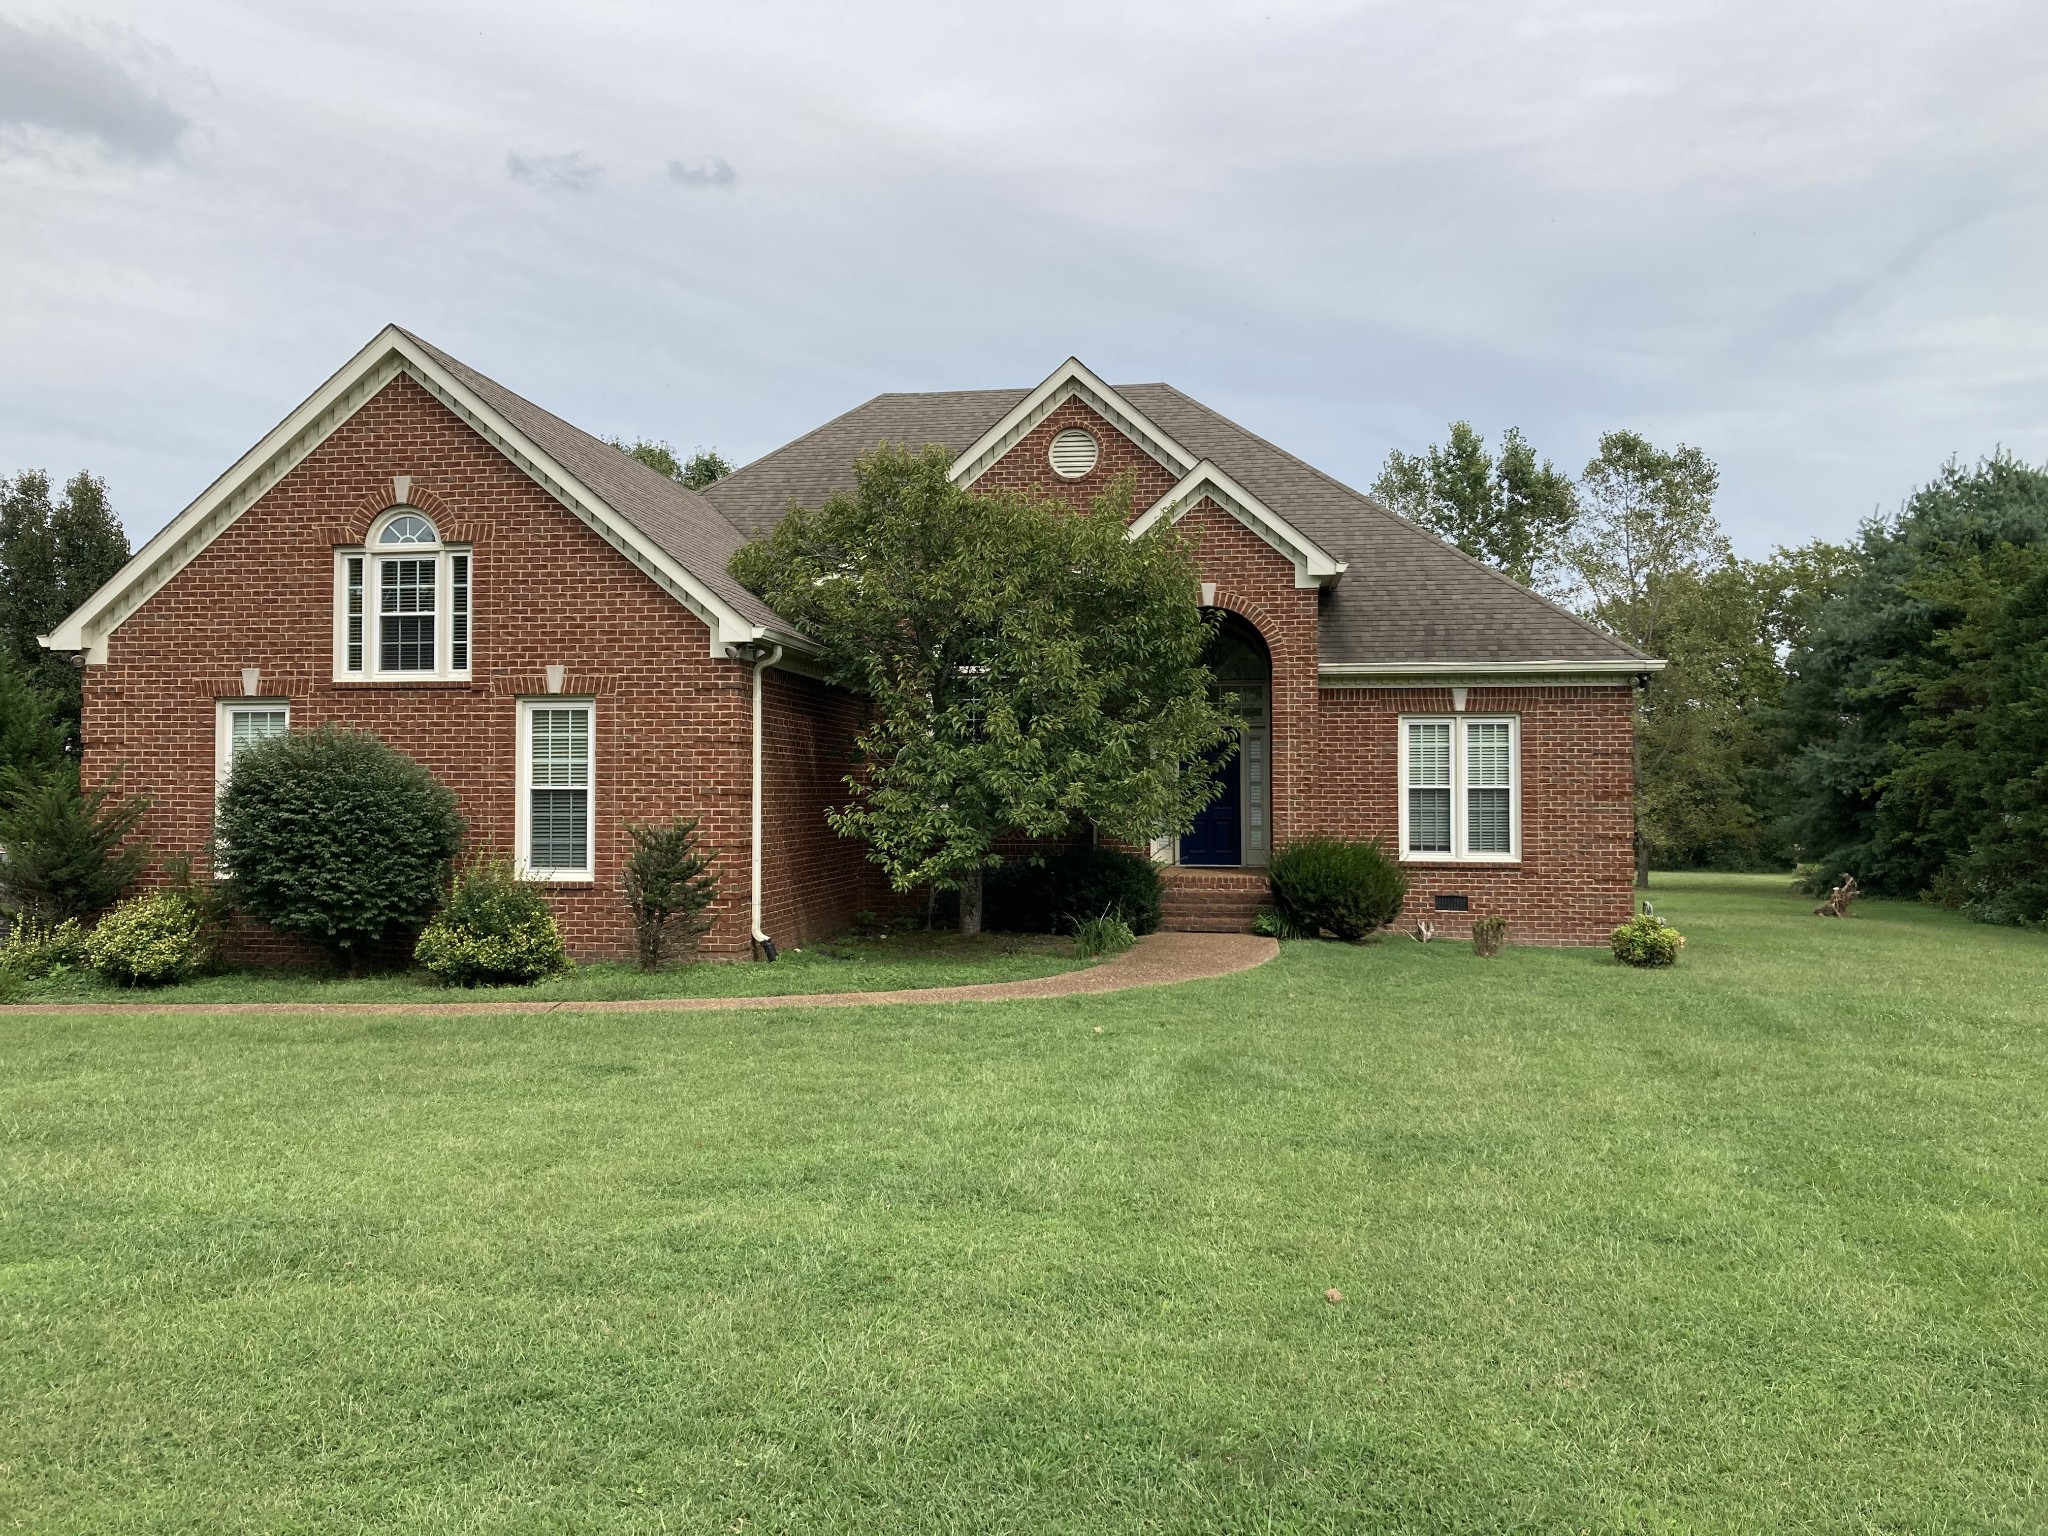 This home is desirably located a mile from I-65 and across the street from all of the shopping and dining at the newly developed Berry Farms. Zoned for Oak View Elementary!!! Cathedral Ceiling off Breakfast Room, Lots of Light, Tranquil View.  Solid Hardwood Floors.Large Back Deck. Nest Thermostat.  Heat and Air Replaced 10 yrs ago.  New Carpet & Paint Being Done Currently.